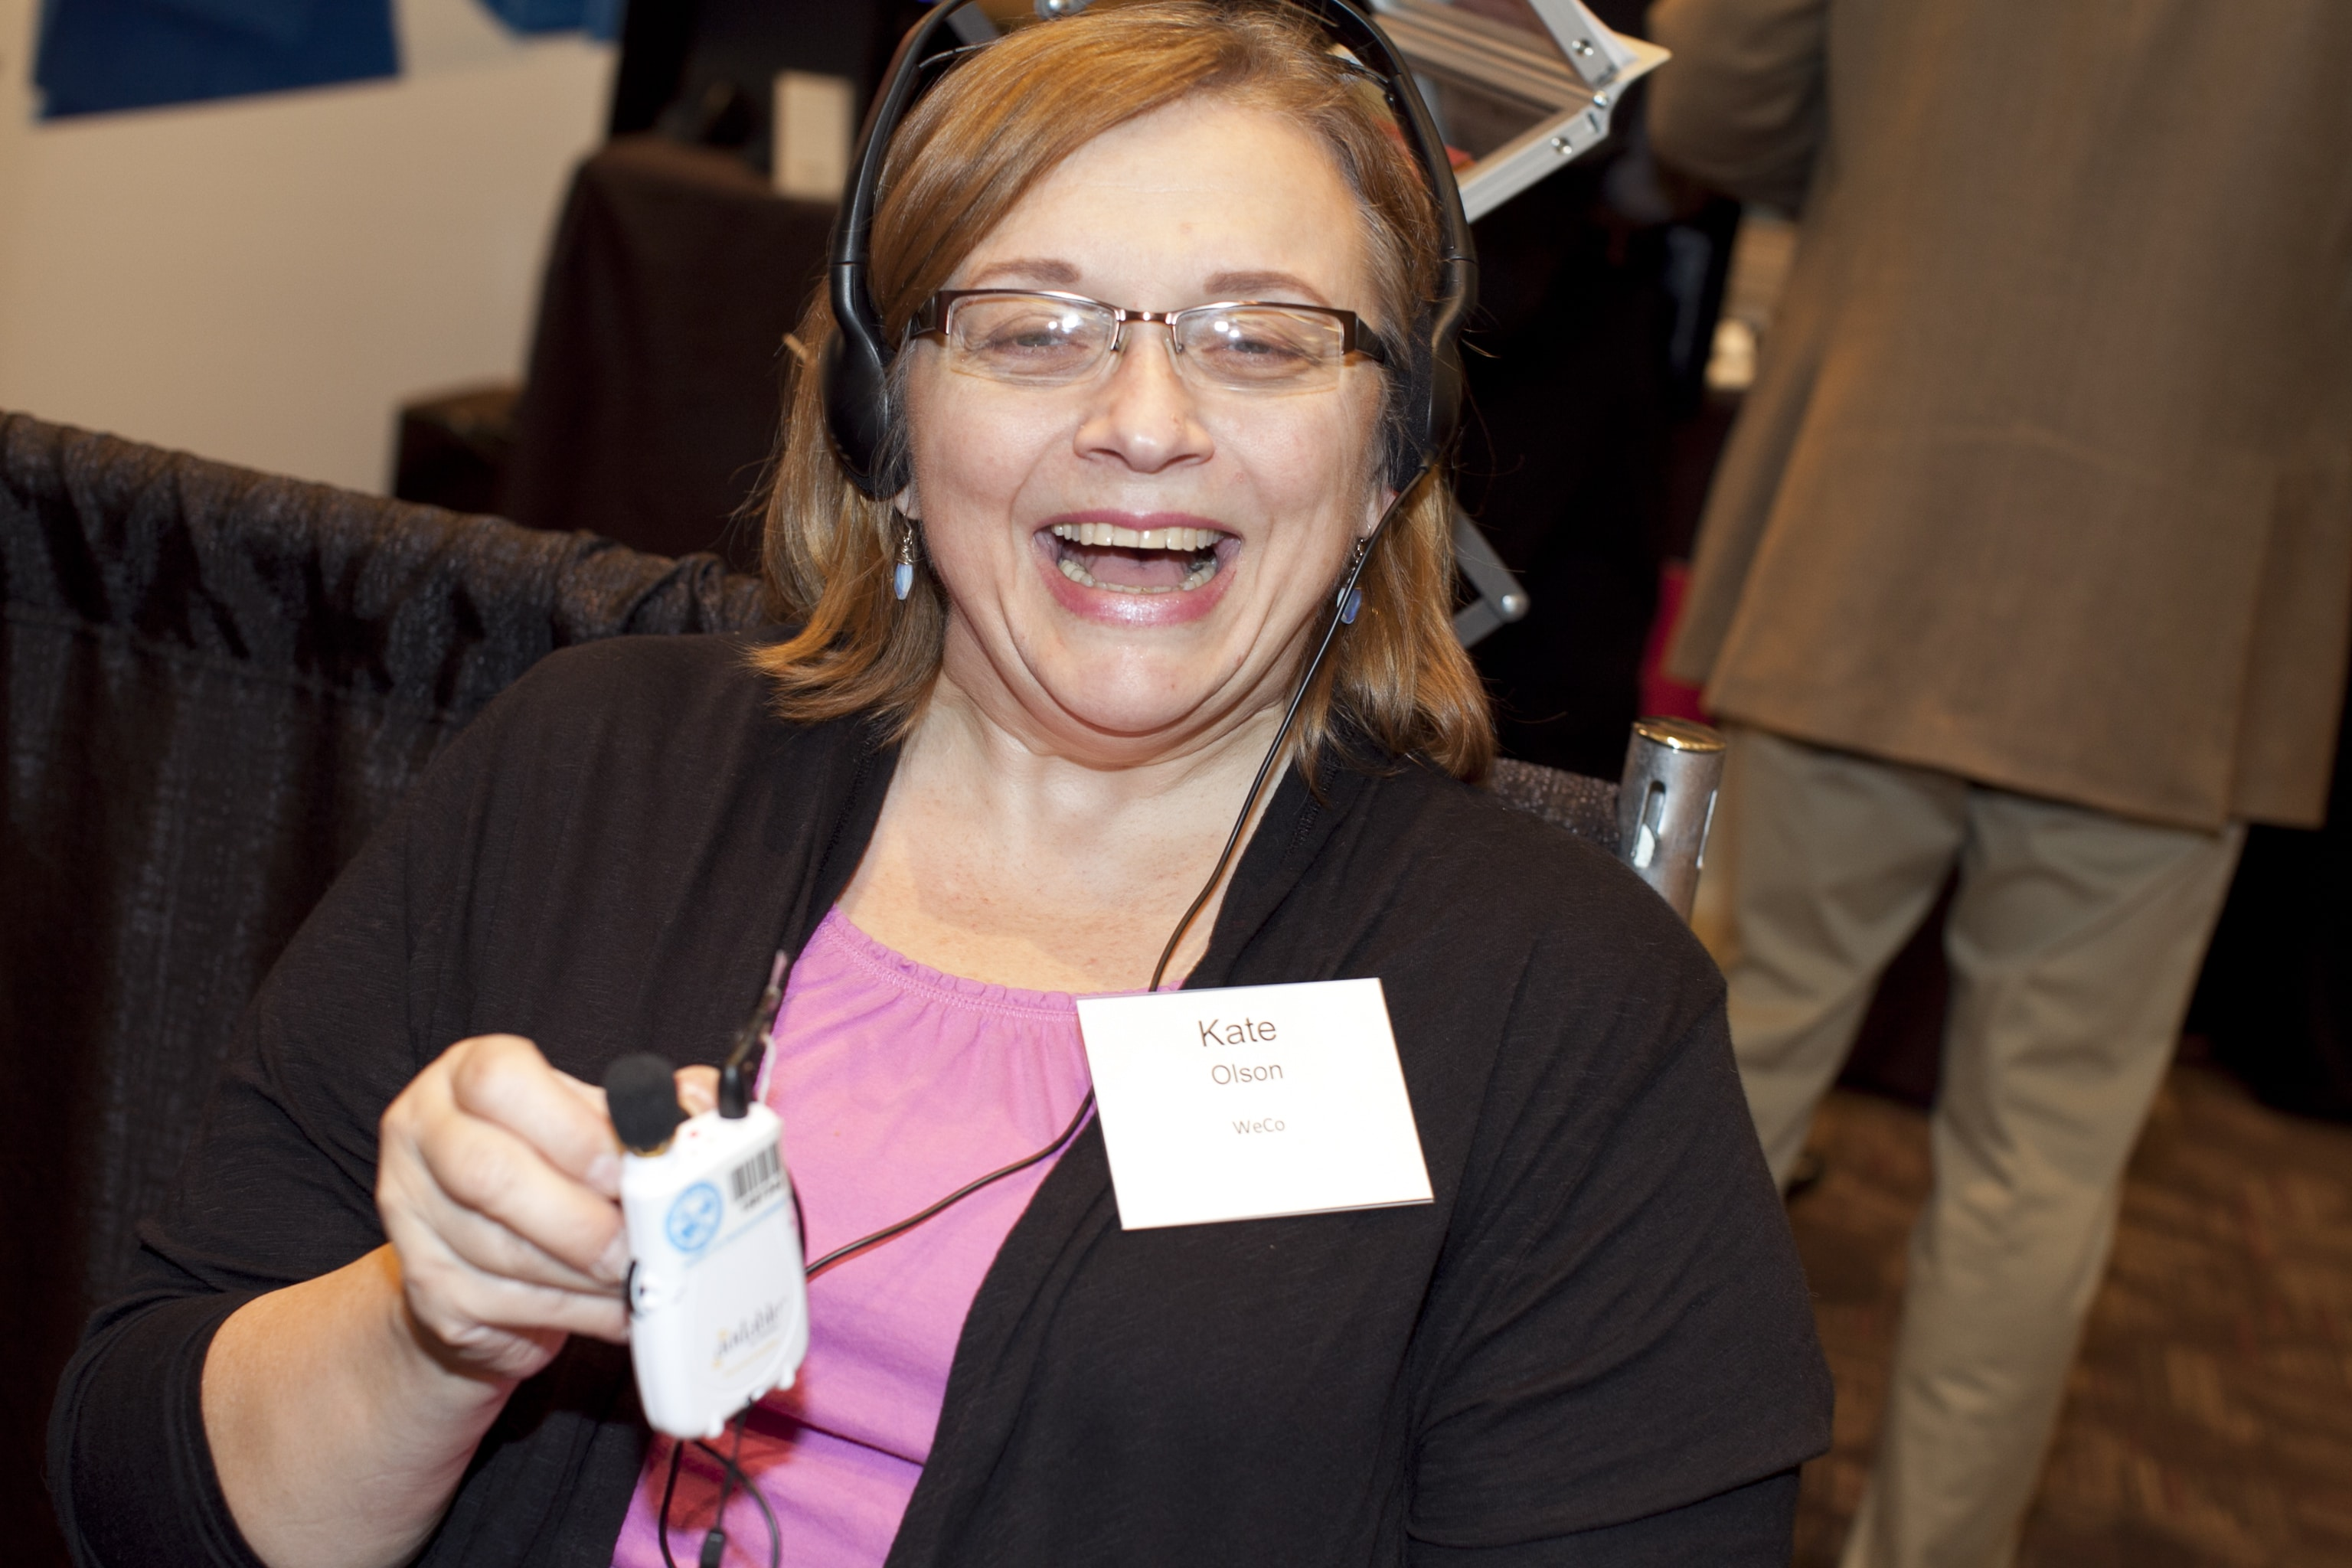 A WeCo Usability and Accessibility Tester holding a hearing amplification device.